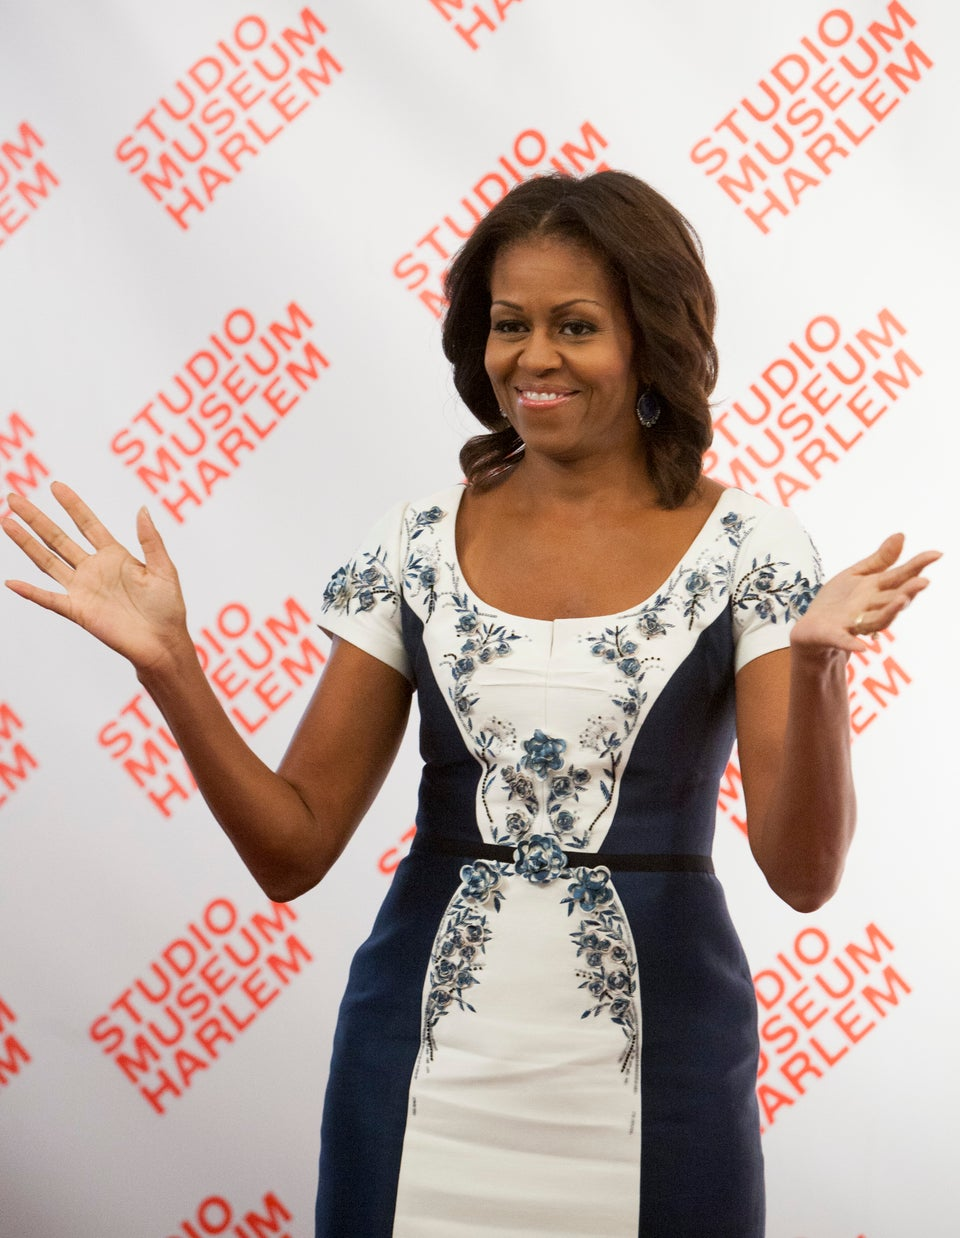 Coffee Talk: Michelle Obama to Appear on 'Biggest Loser'